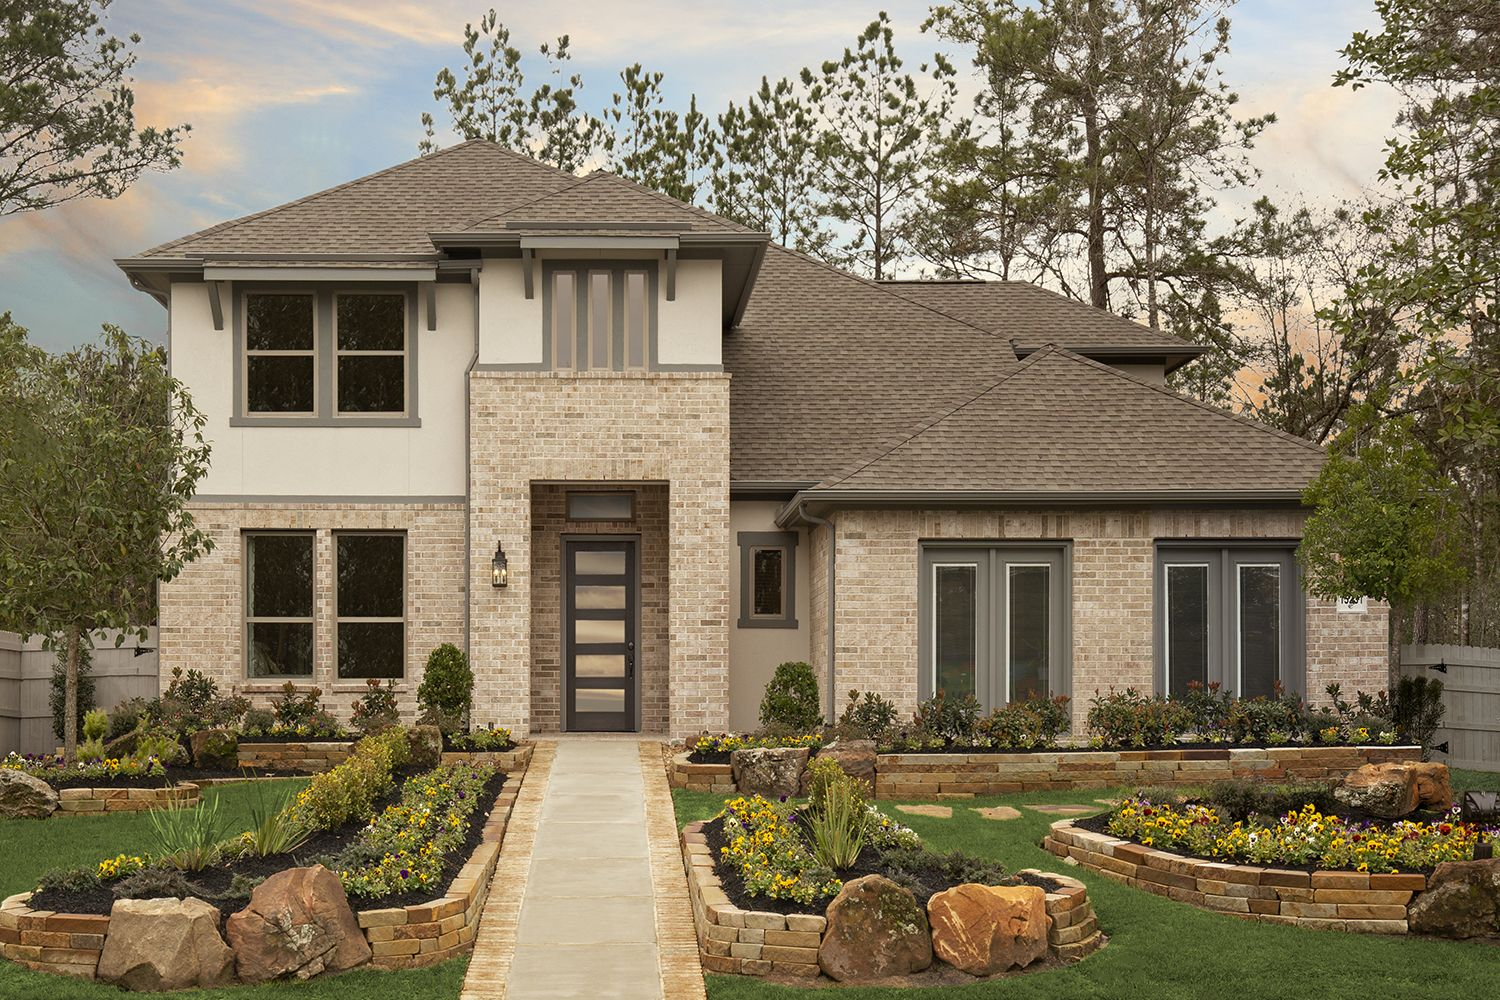 Brick And Stucco Exterior Elevation In 2020 Coventry Homes Stucco Exterior Exterior